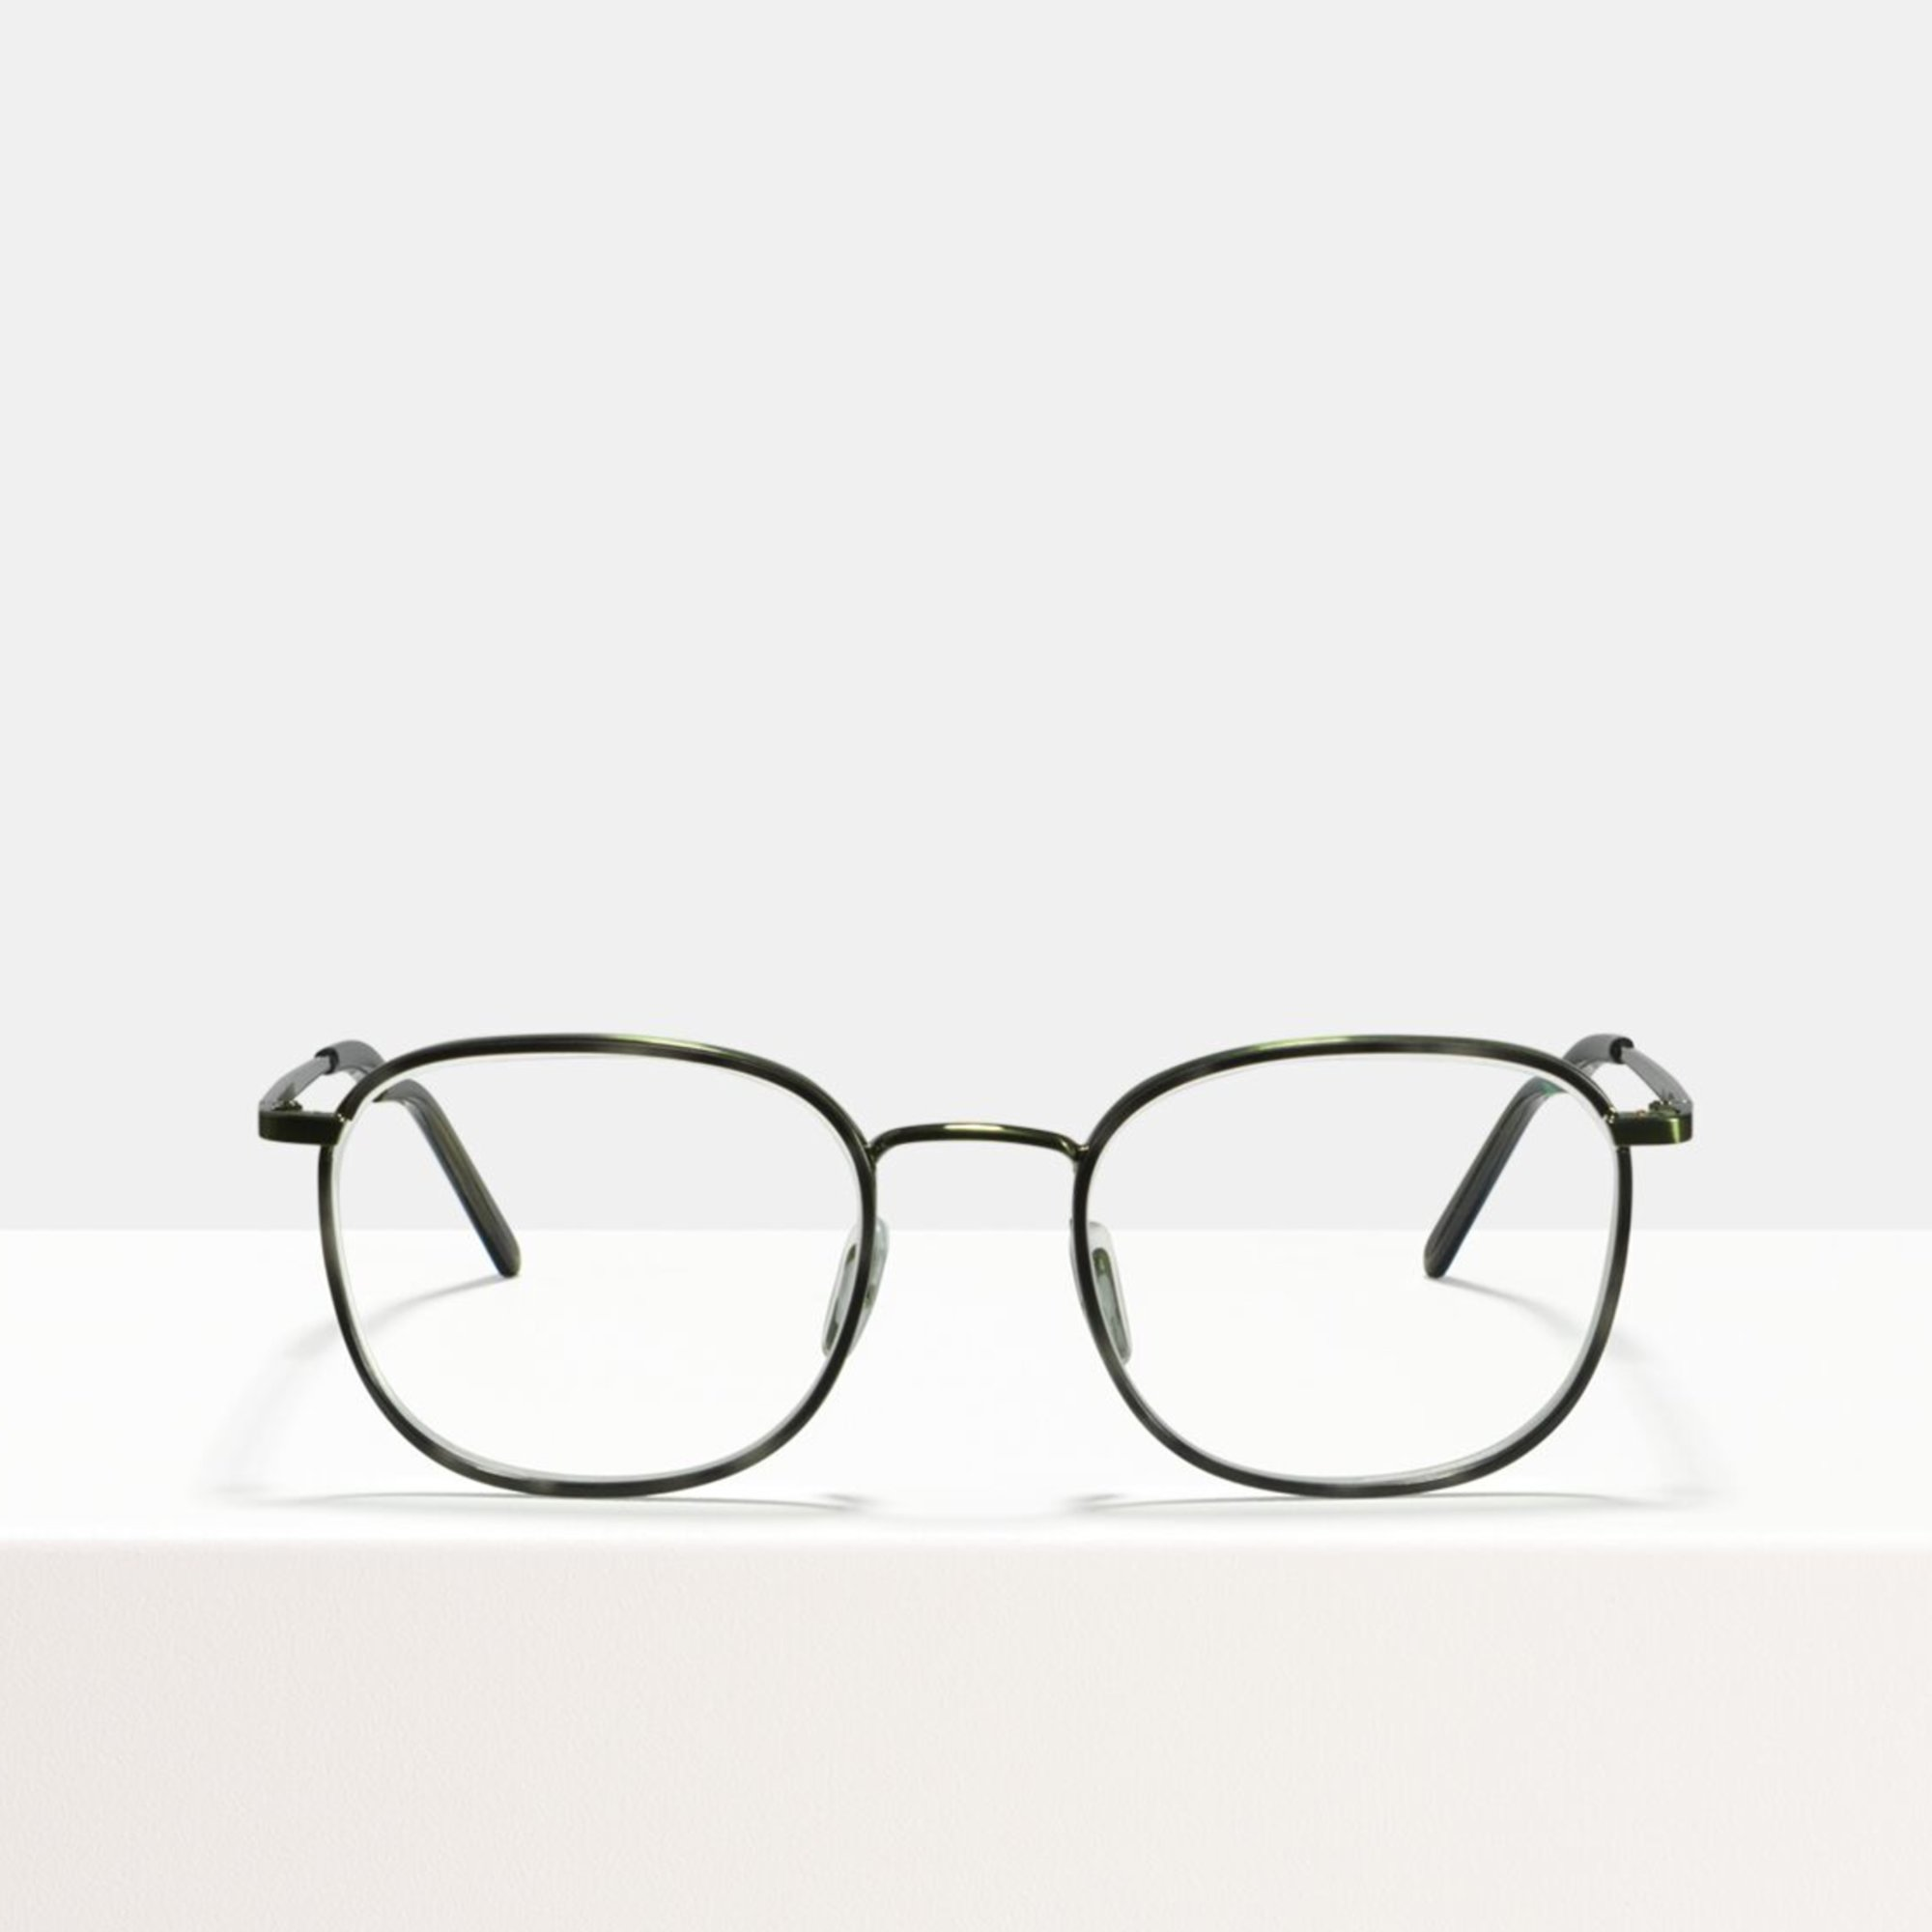 Ace & Tate Glasses | square combi in Beige, Clear, Green, Grey